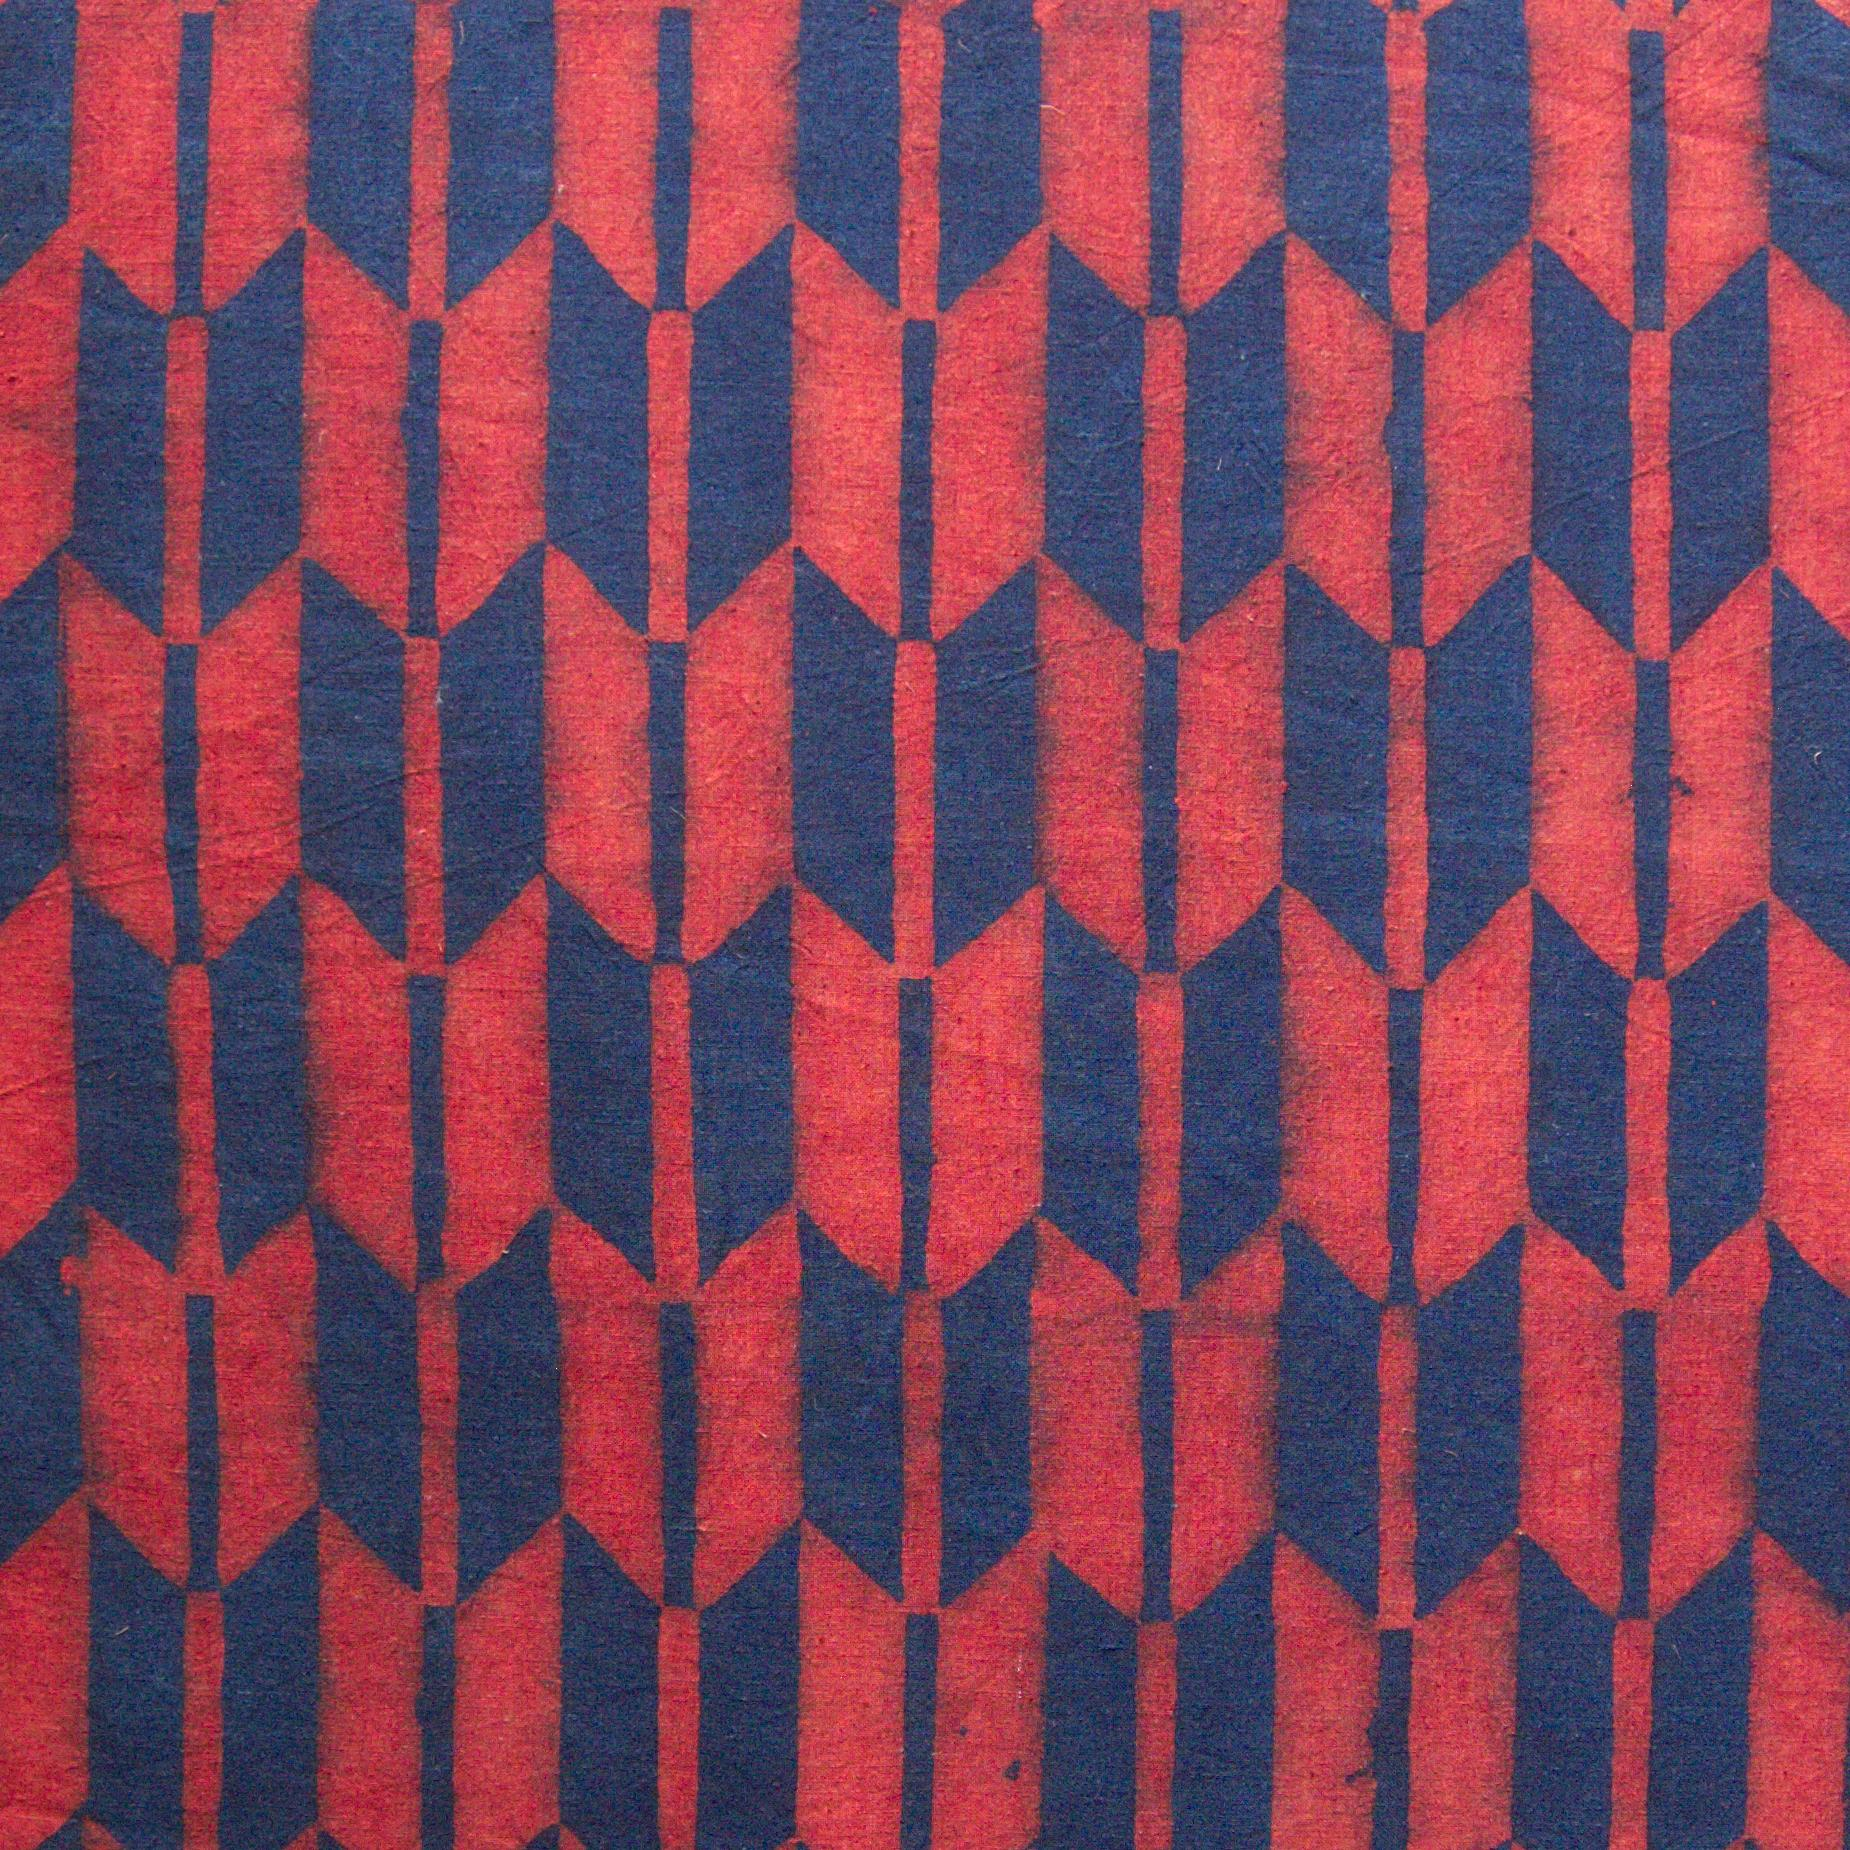 100% Block-Printed Cotton Fabric From India- Ajrak - Indigo Alizarin Fletching Print